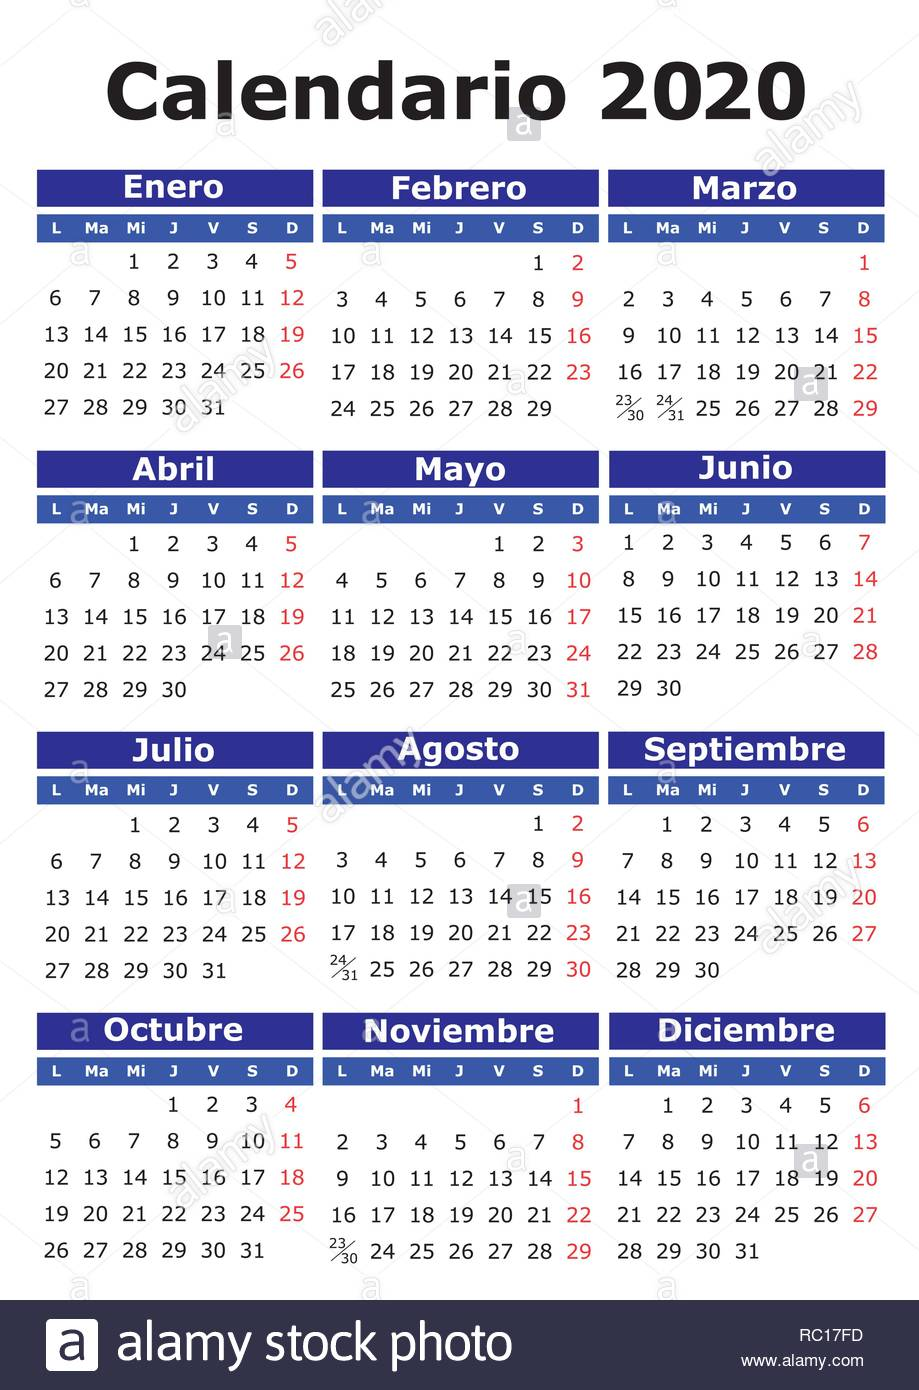 Calendario 2020 2020.2020 Vector Calendar In Spanish Easy For Edit And Apply